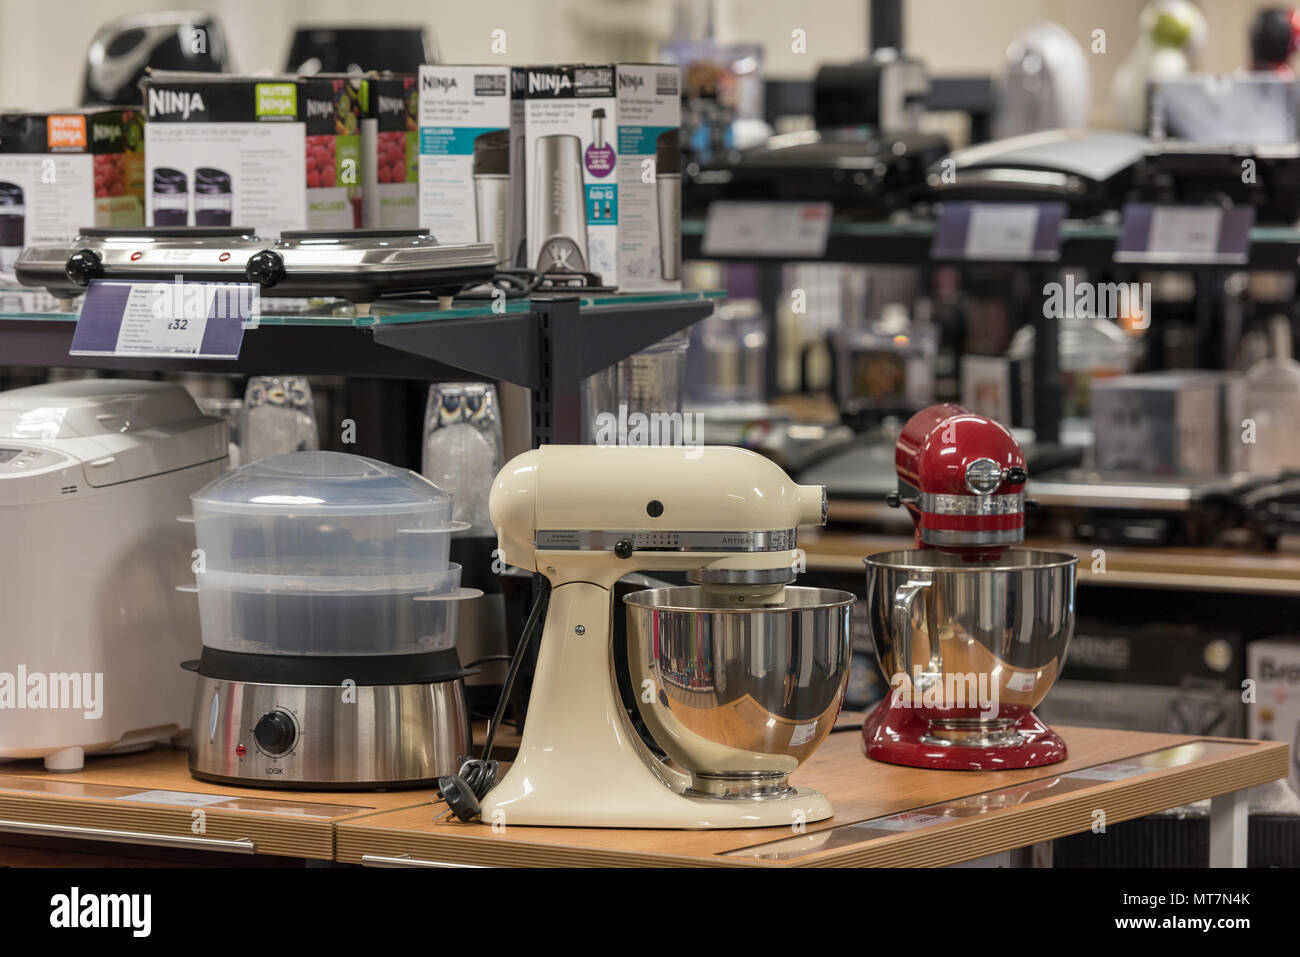 variety of electrical domestic appliances and kitchen equipment on ...